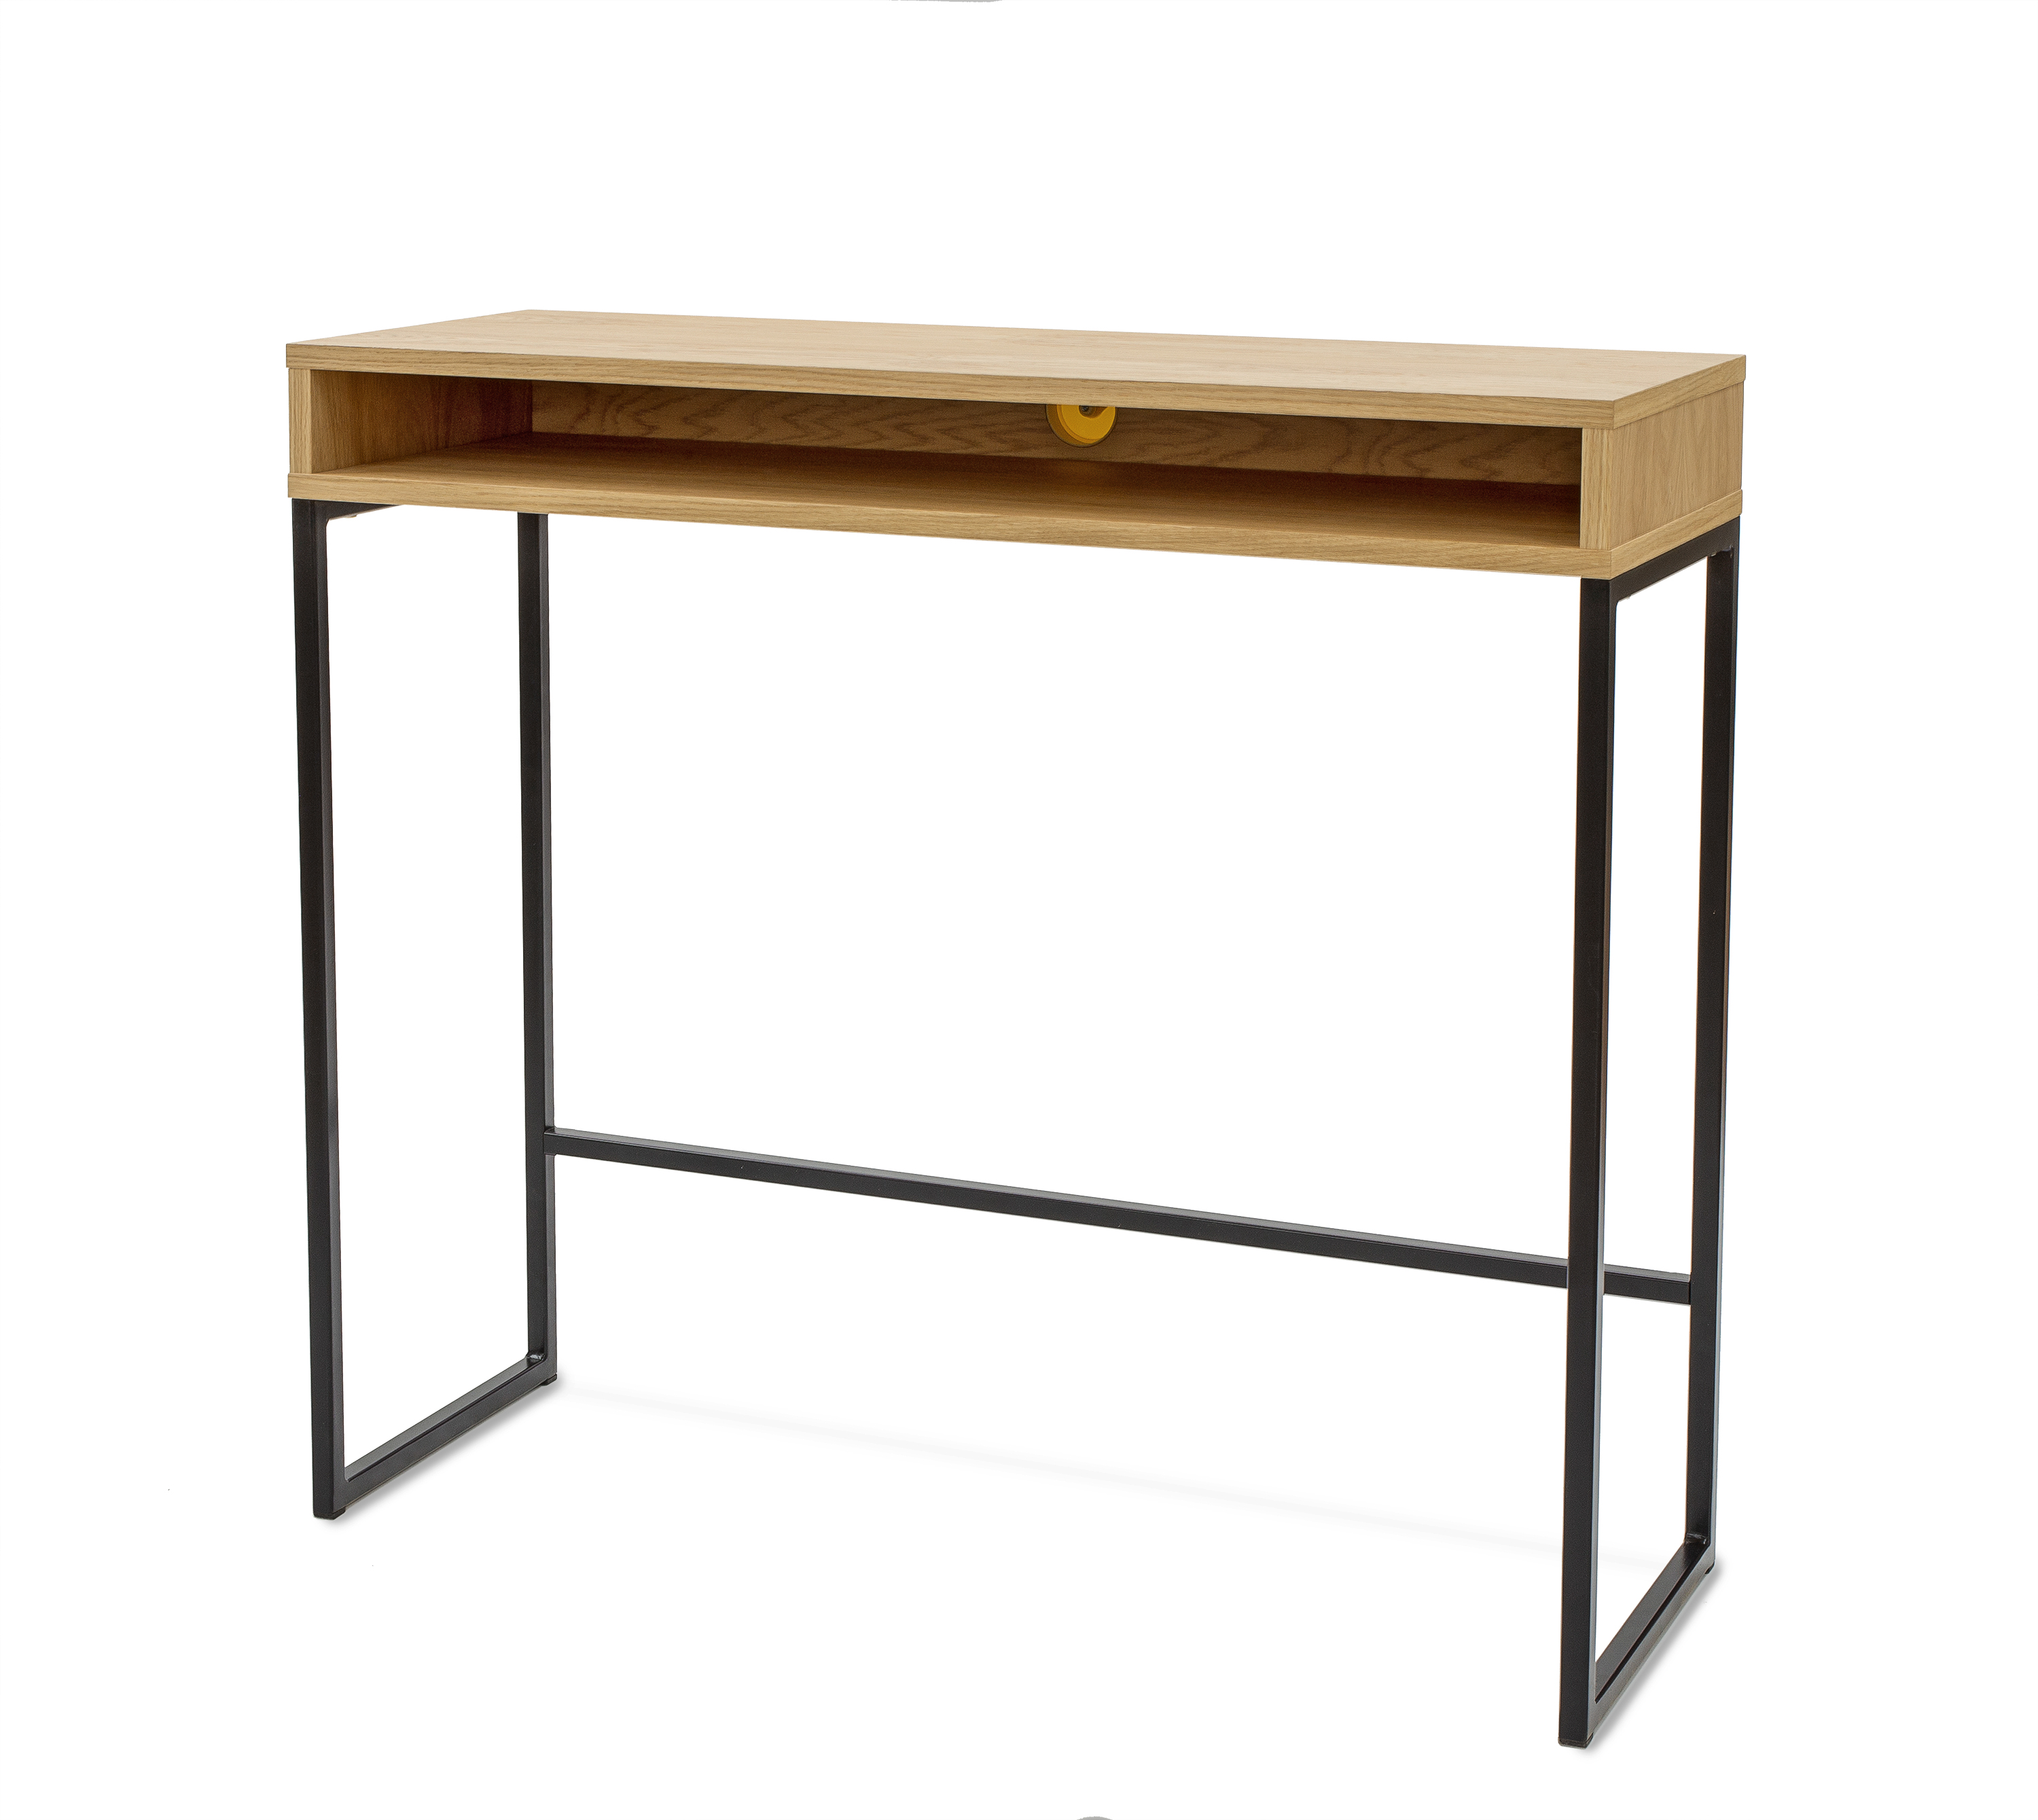 243001001162 Frame Desk High 01